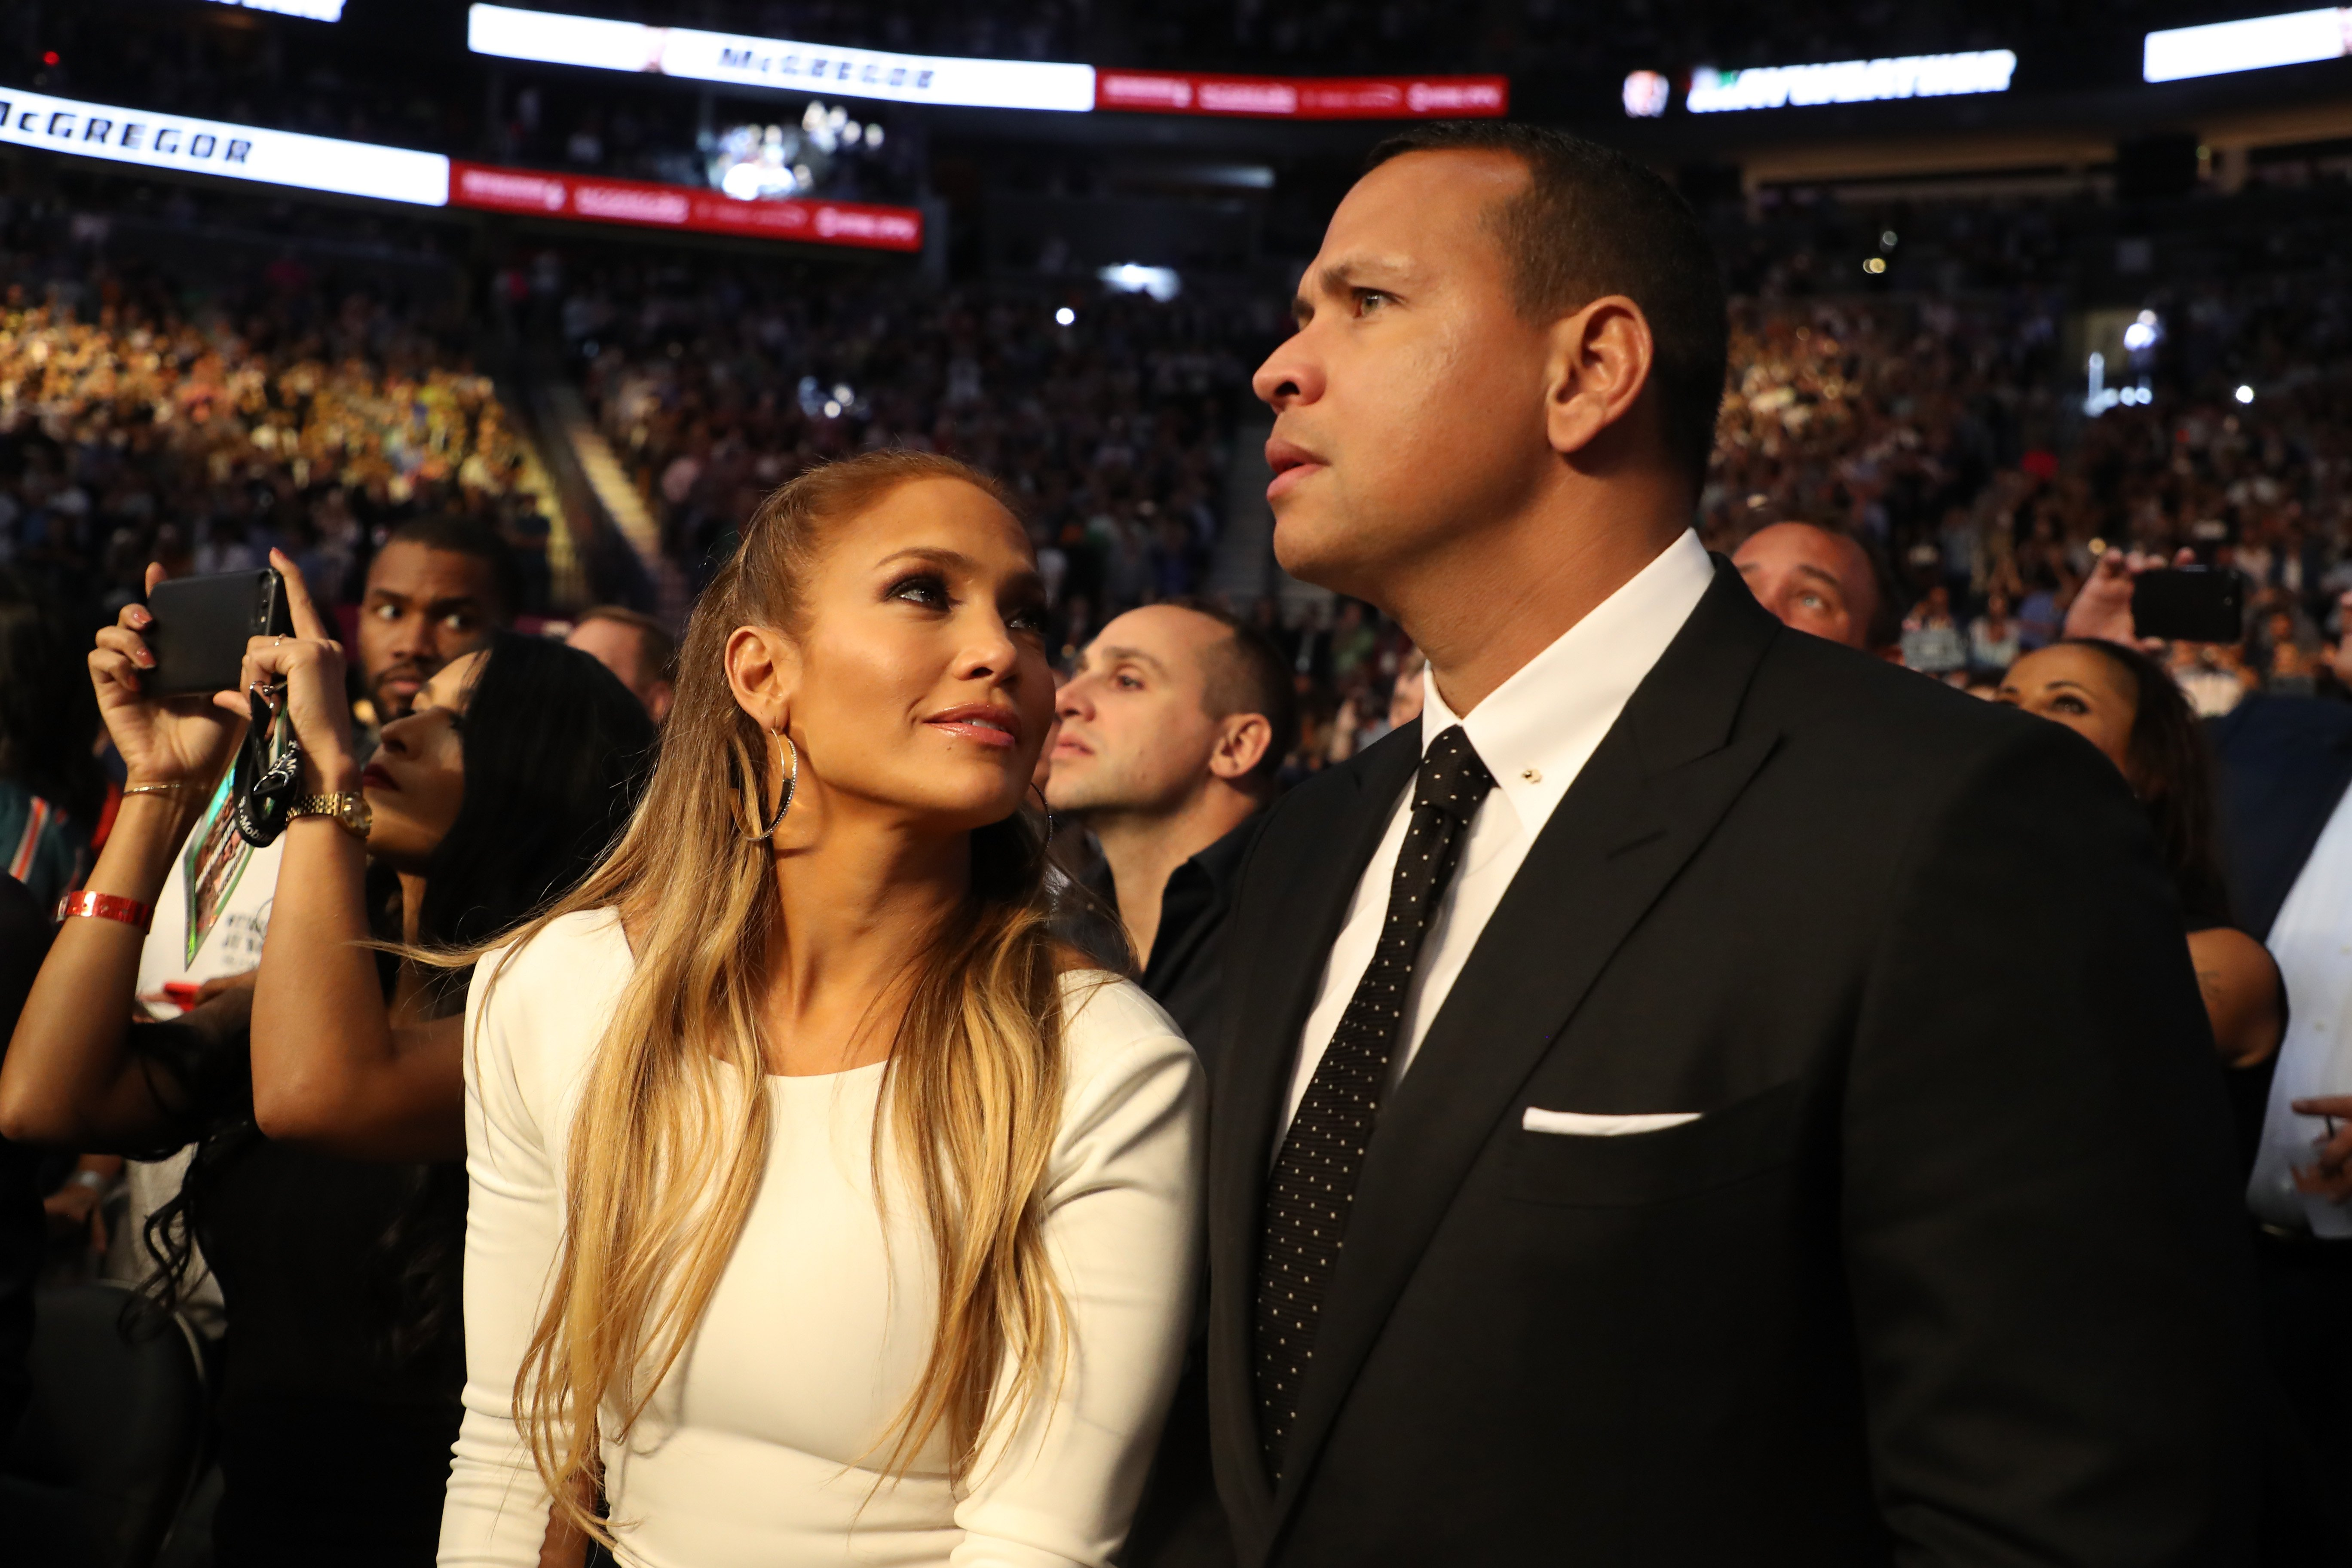 Jennifer Lopez and Alex Rodriguez attend the super welterweight boxing match between Floyd Mayweather Jr. and Conor McGregor | Source: Getty Images